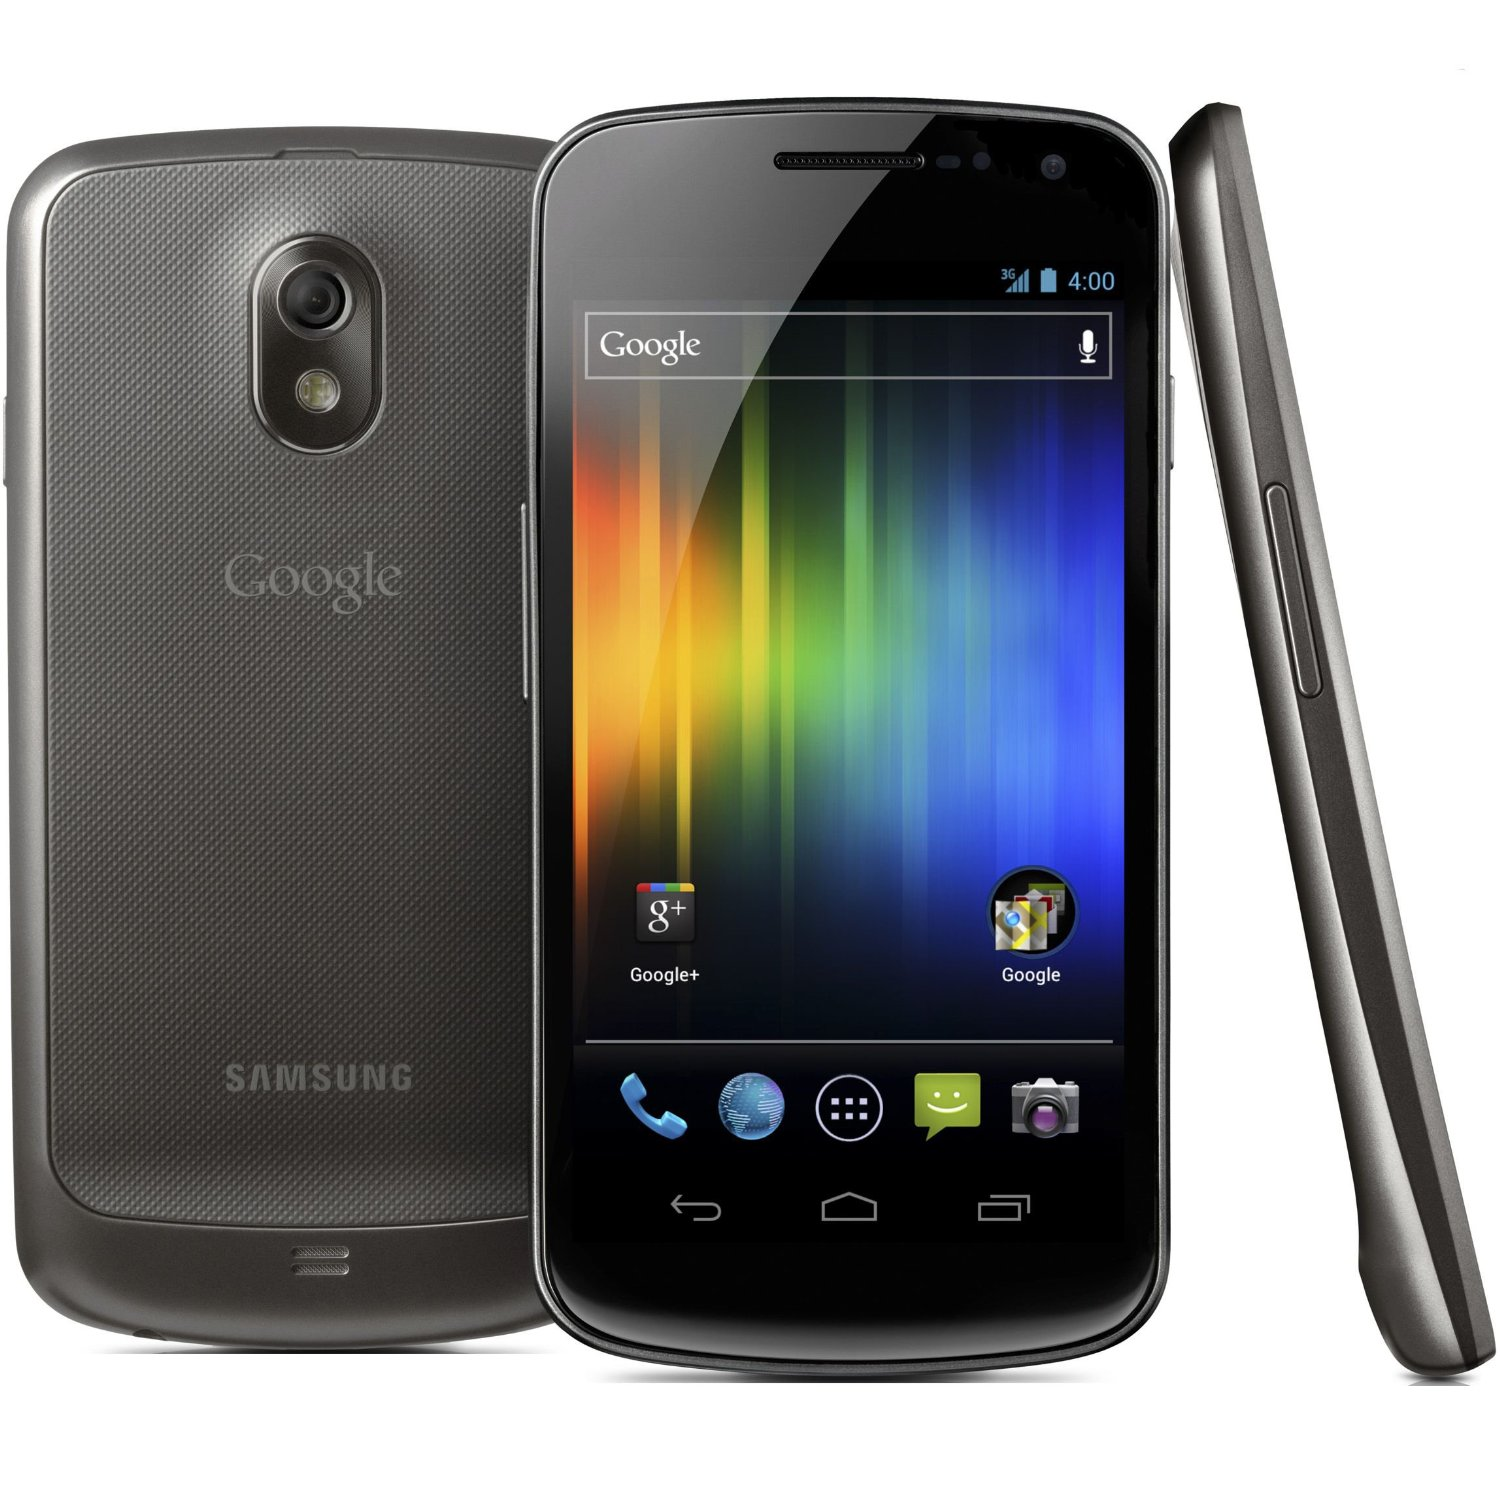 ΚΙΝΗΤΟ ΤΗΛΕΦΩΝΟ Samsung i9250 Galaxy Nexus MOBILE PHONE